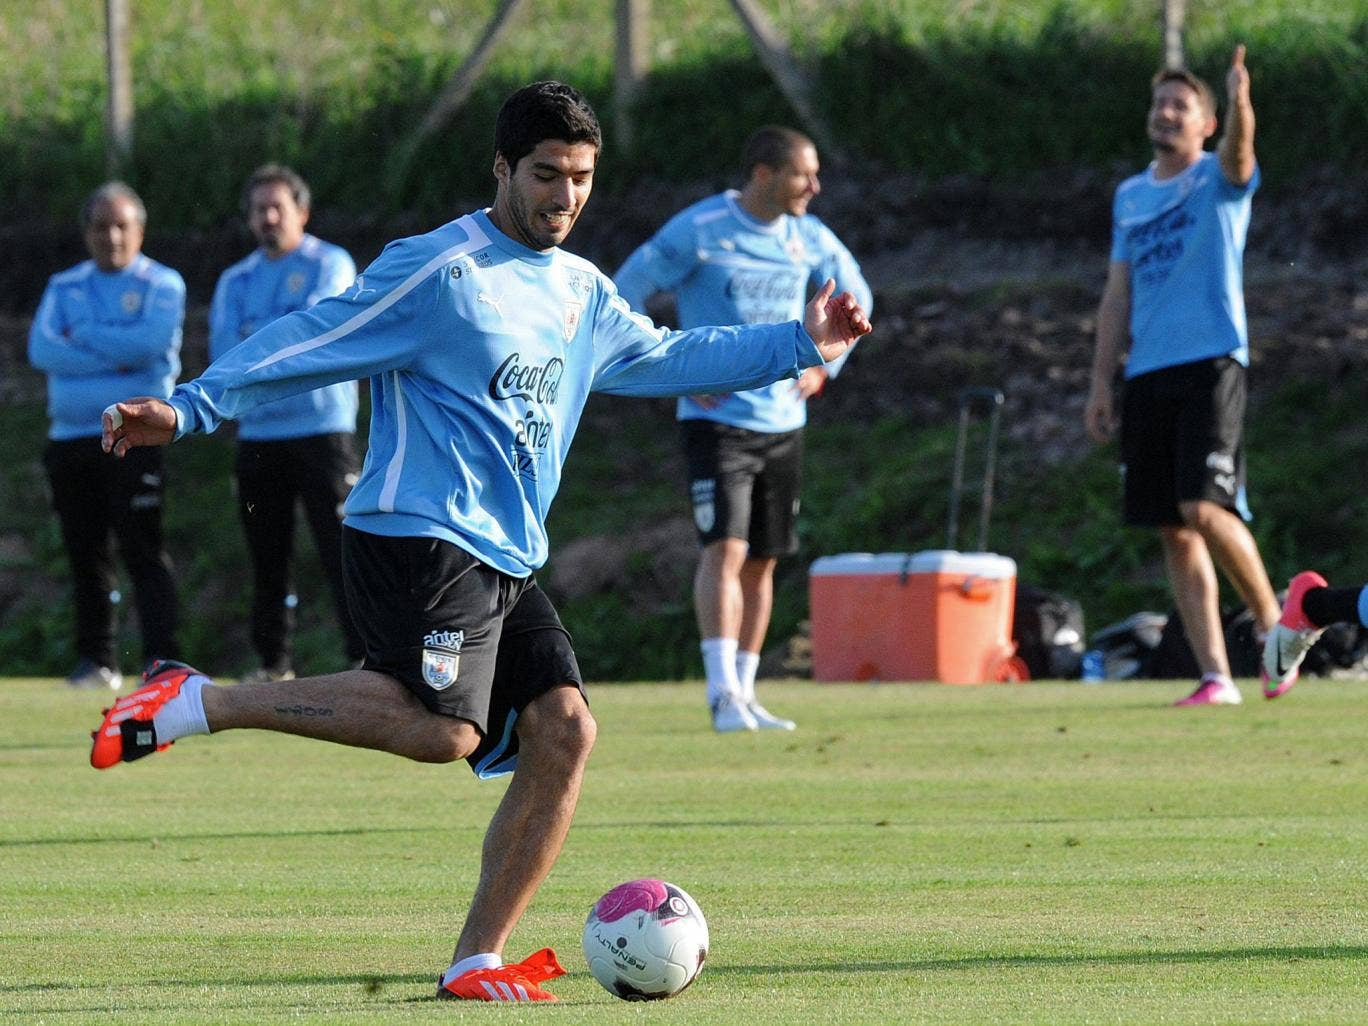 Luis Suarez pictured training with the Uruguay national team